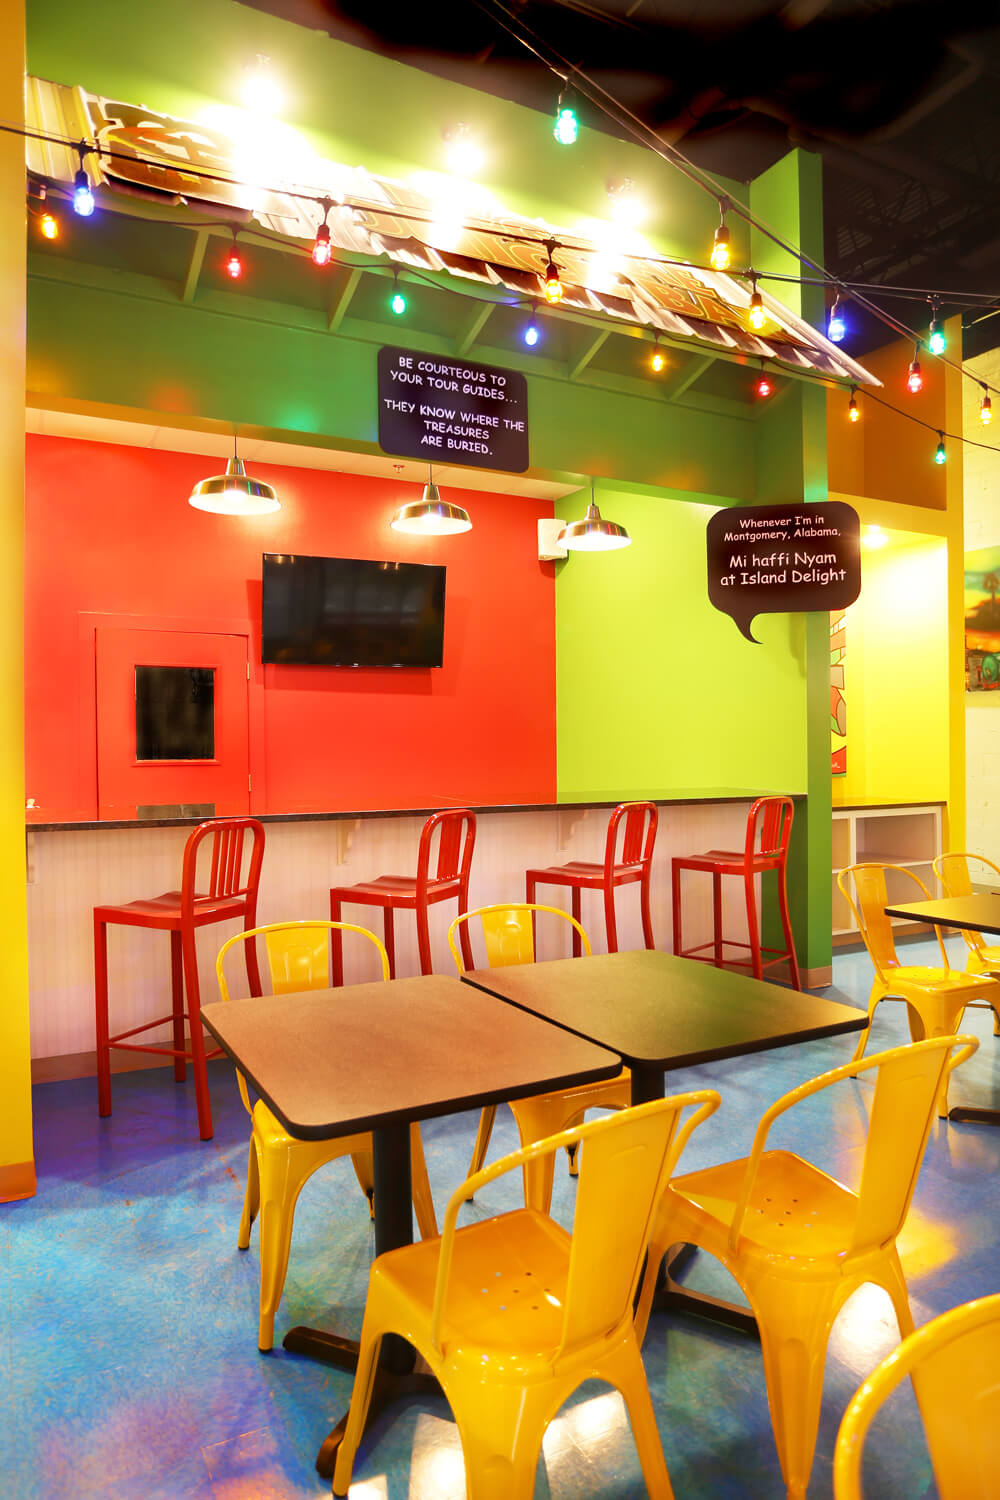 Designed by Foshee Architecture – Island Delight Restaurant Awning at Juice Bar